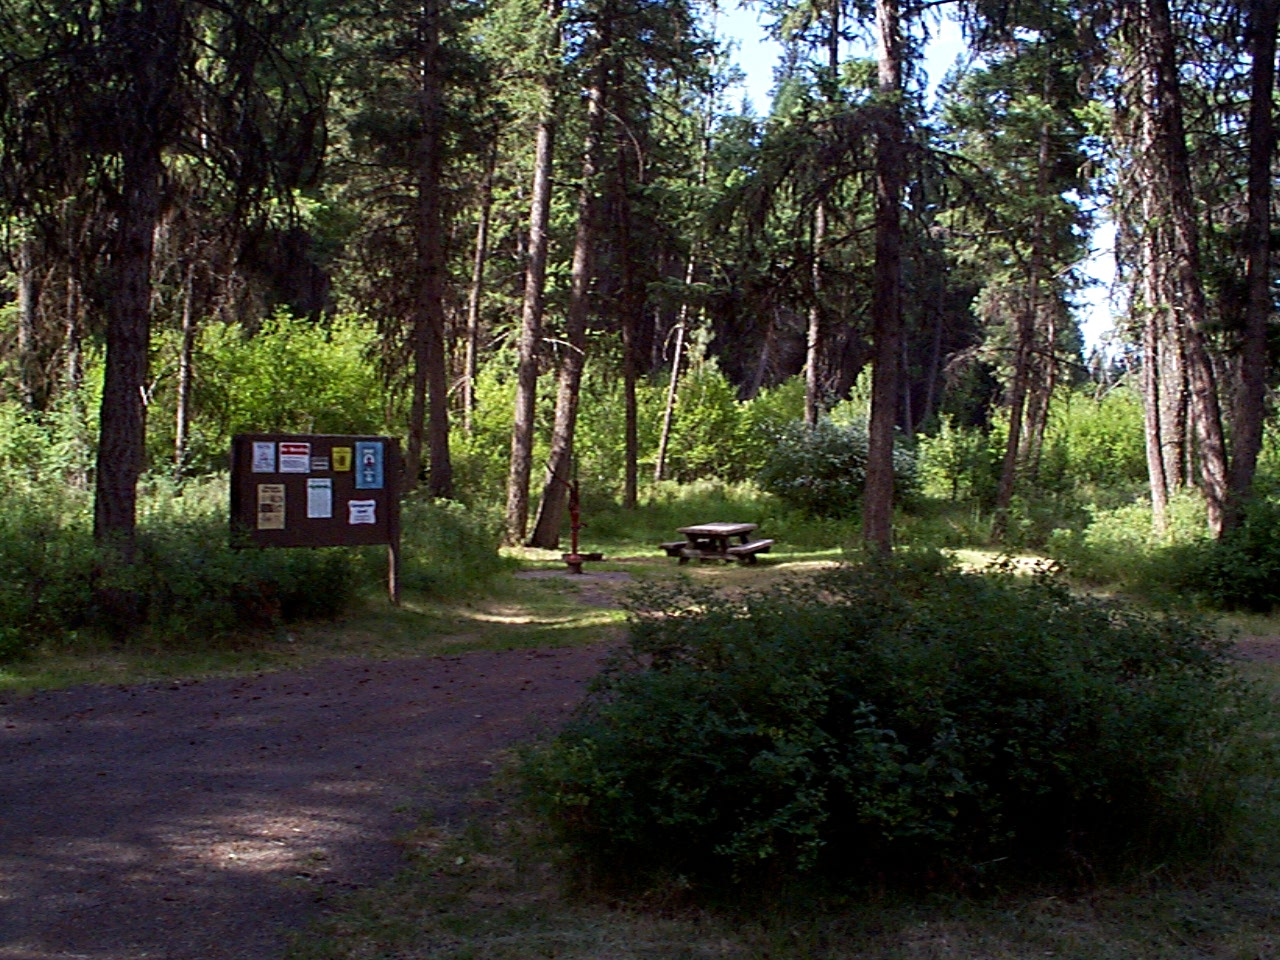 Forested campground with pine and fir trees above picnic table